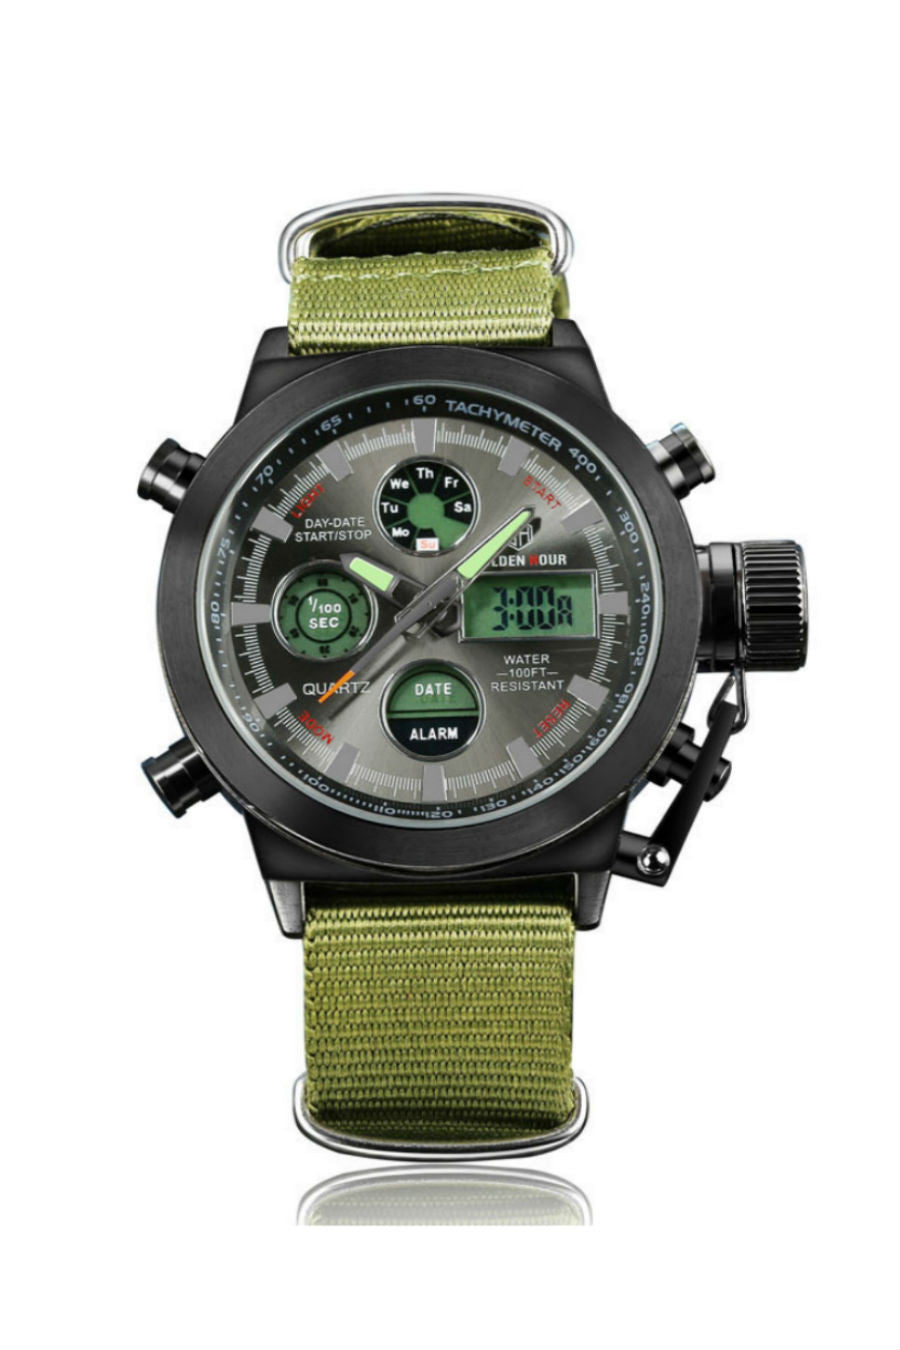 Army Green Nylon Miliatary Watch